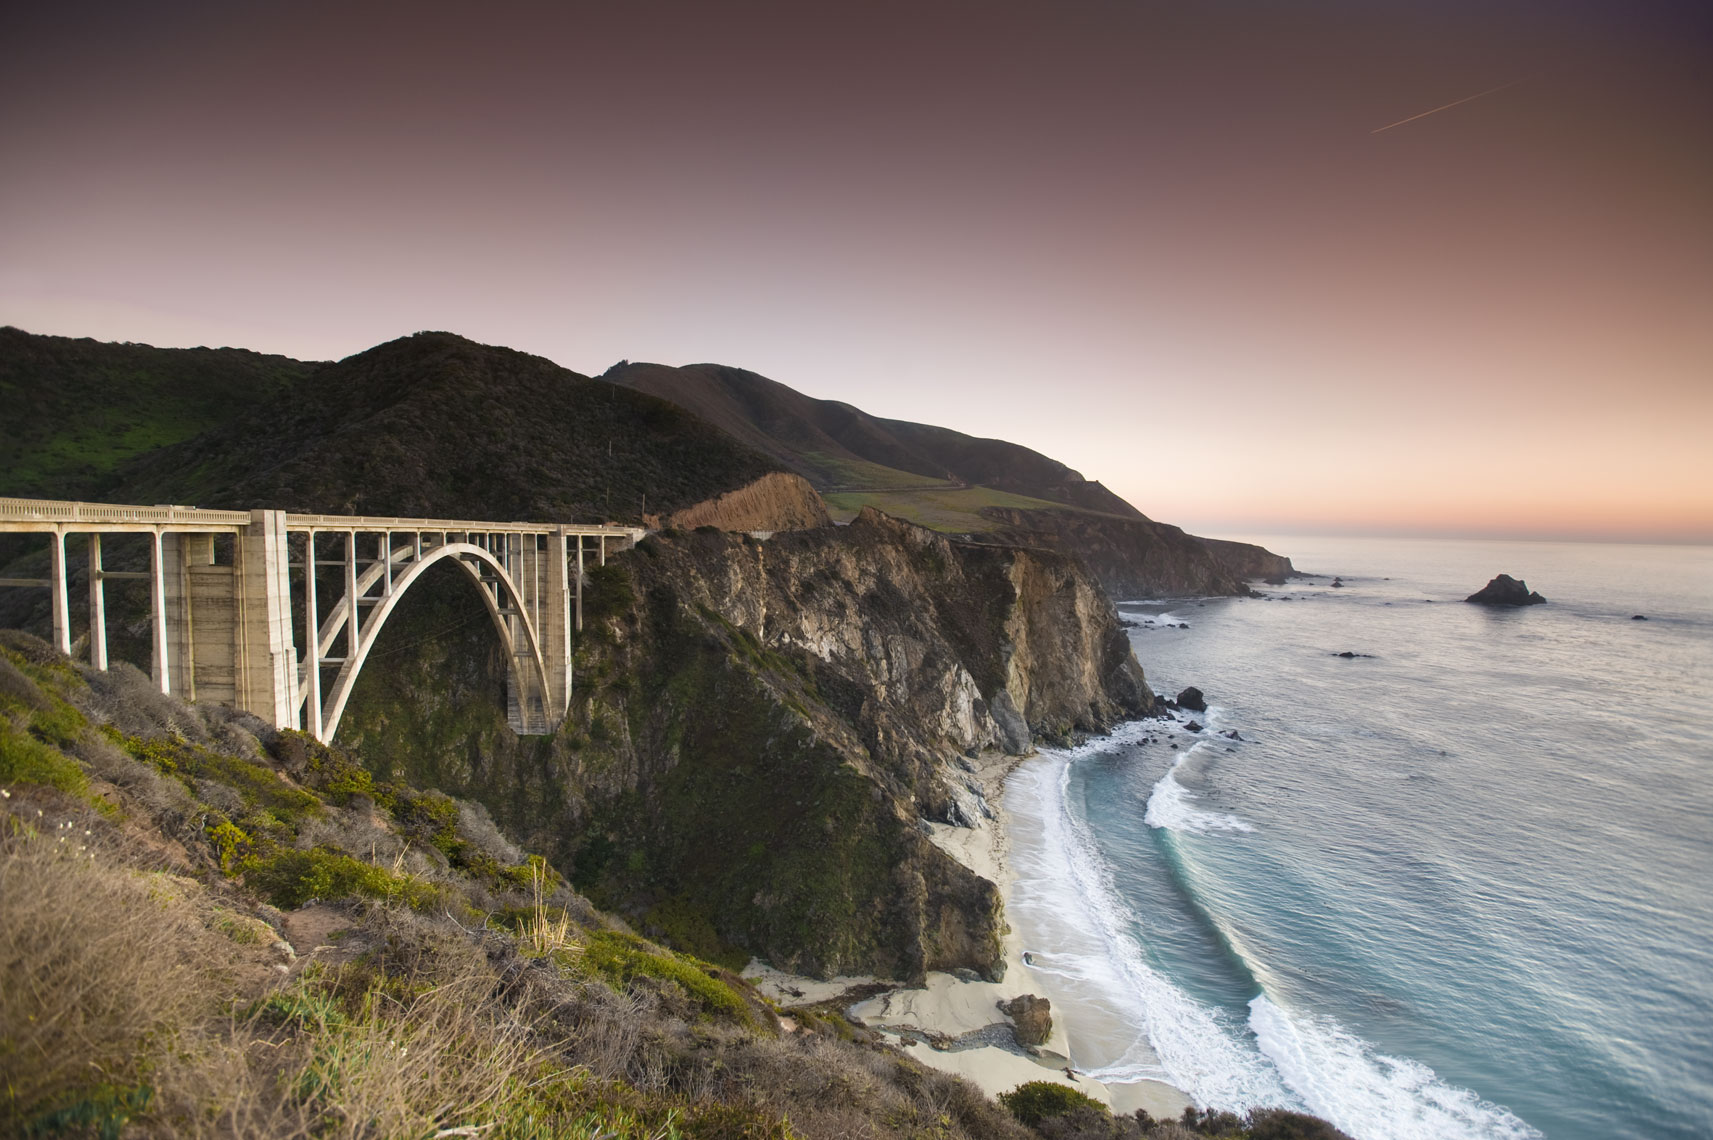 Bixby Bridge, Big Sur, by California landscape photographer Mike Morgan.